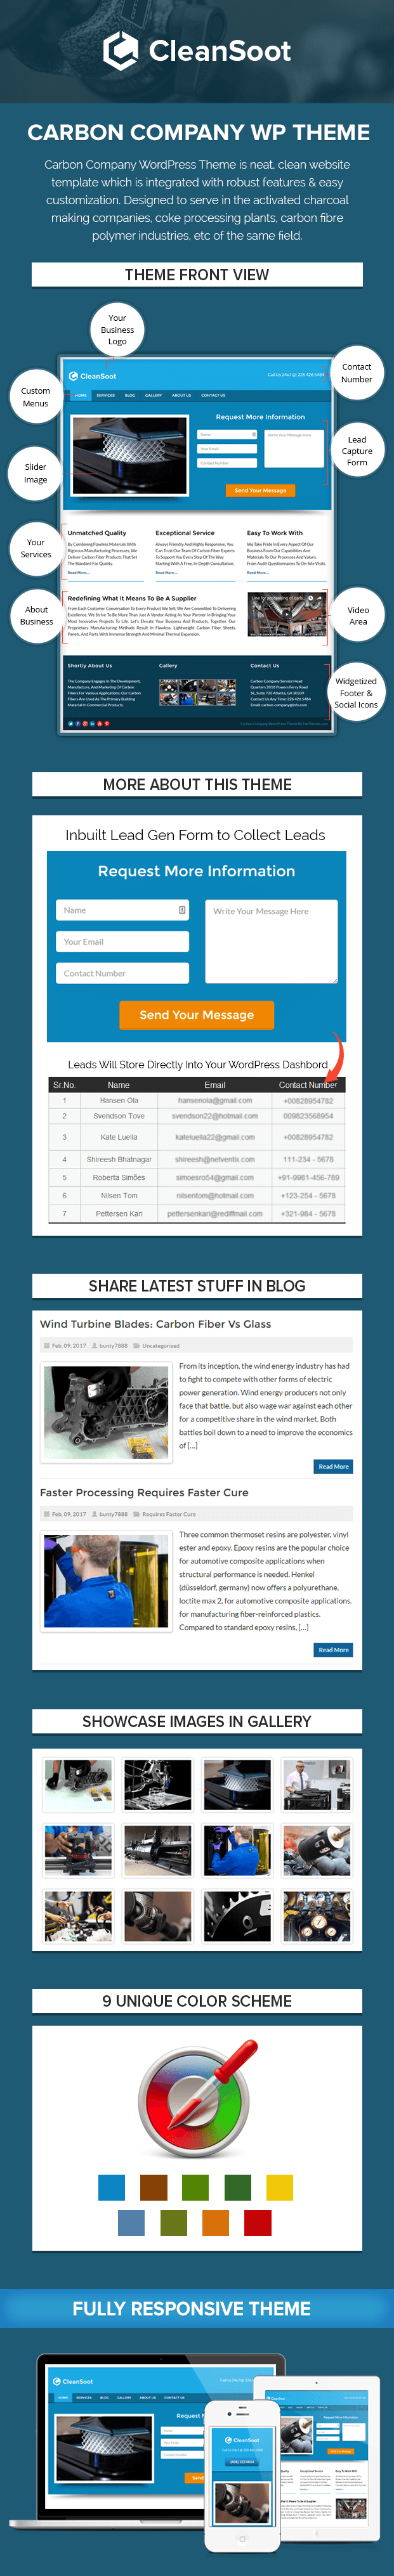 Carbon Company WordPress Theme Sales